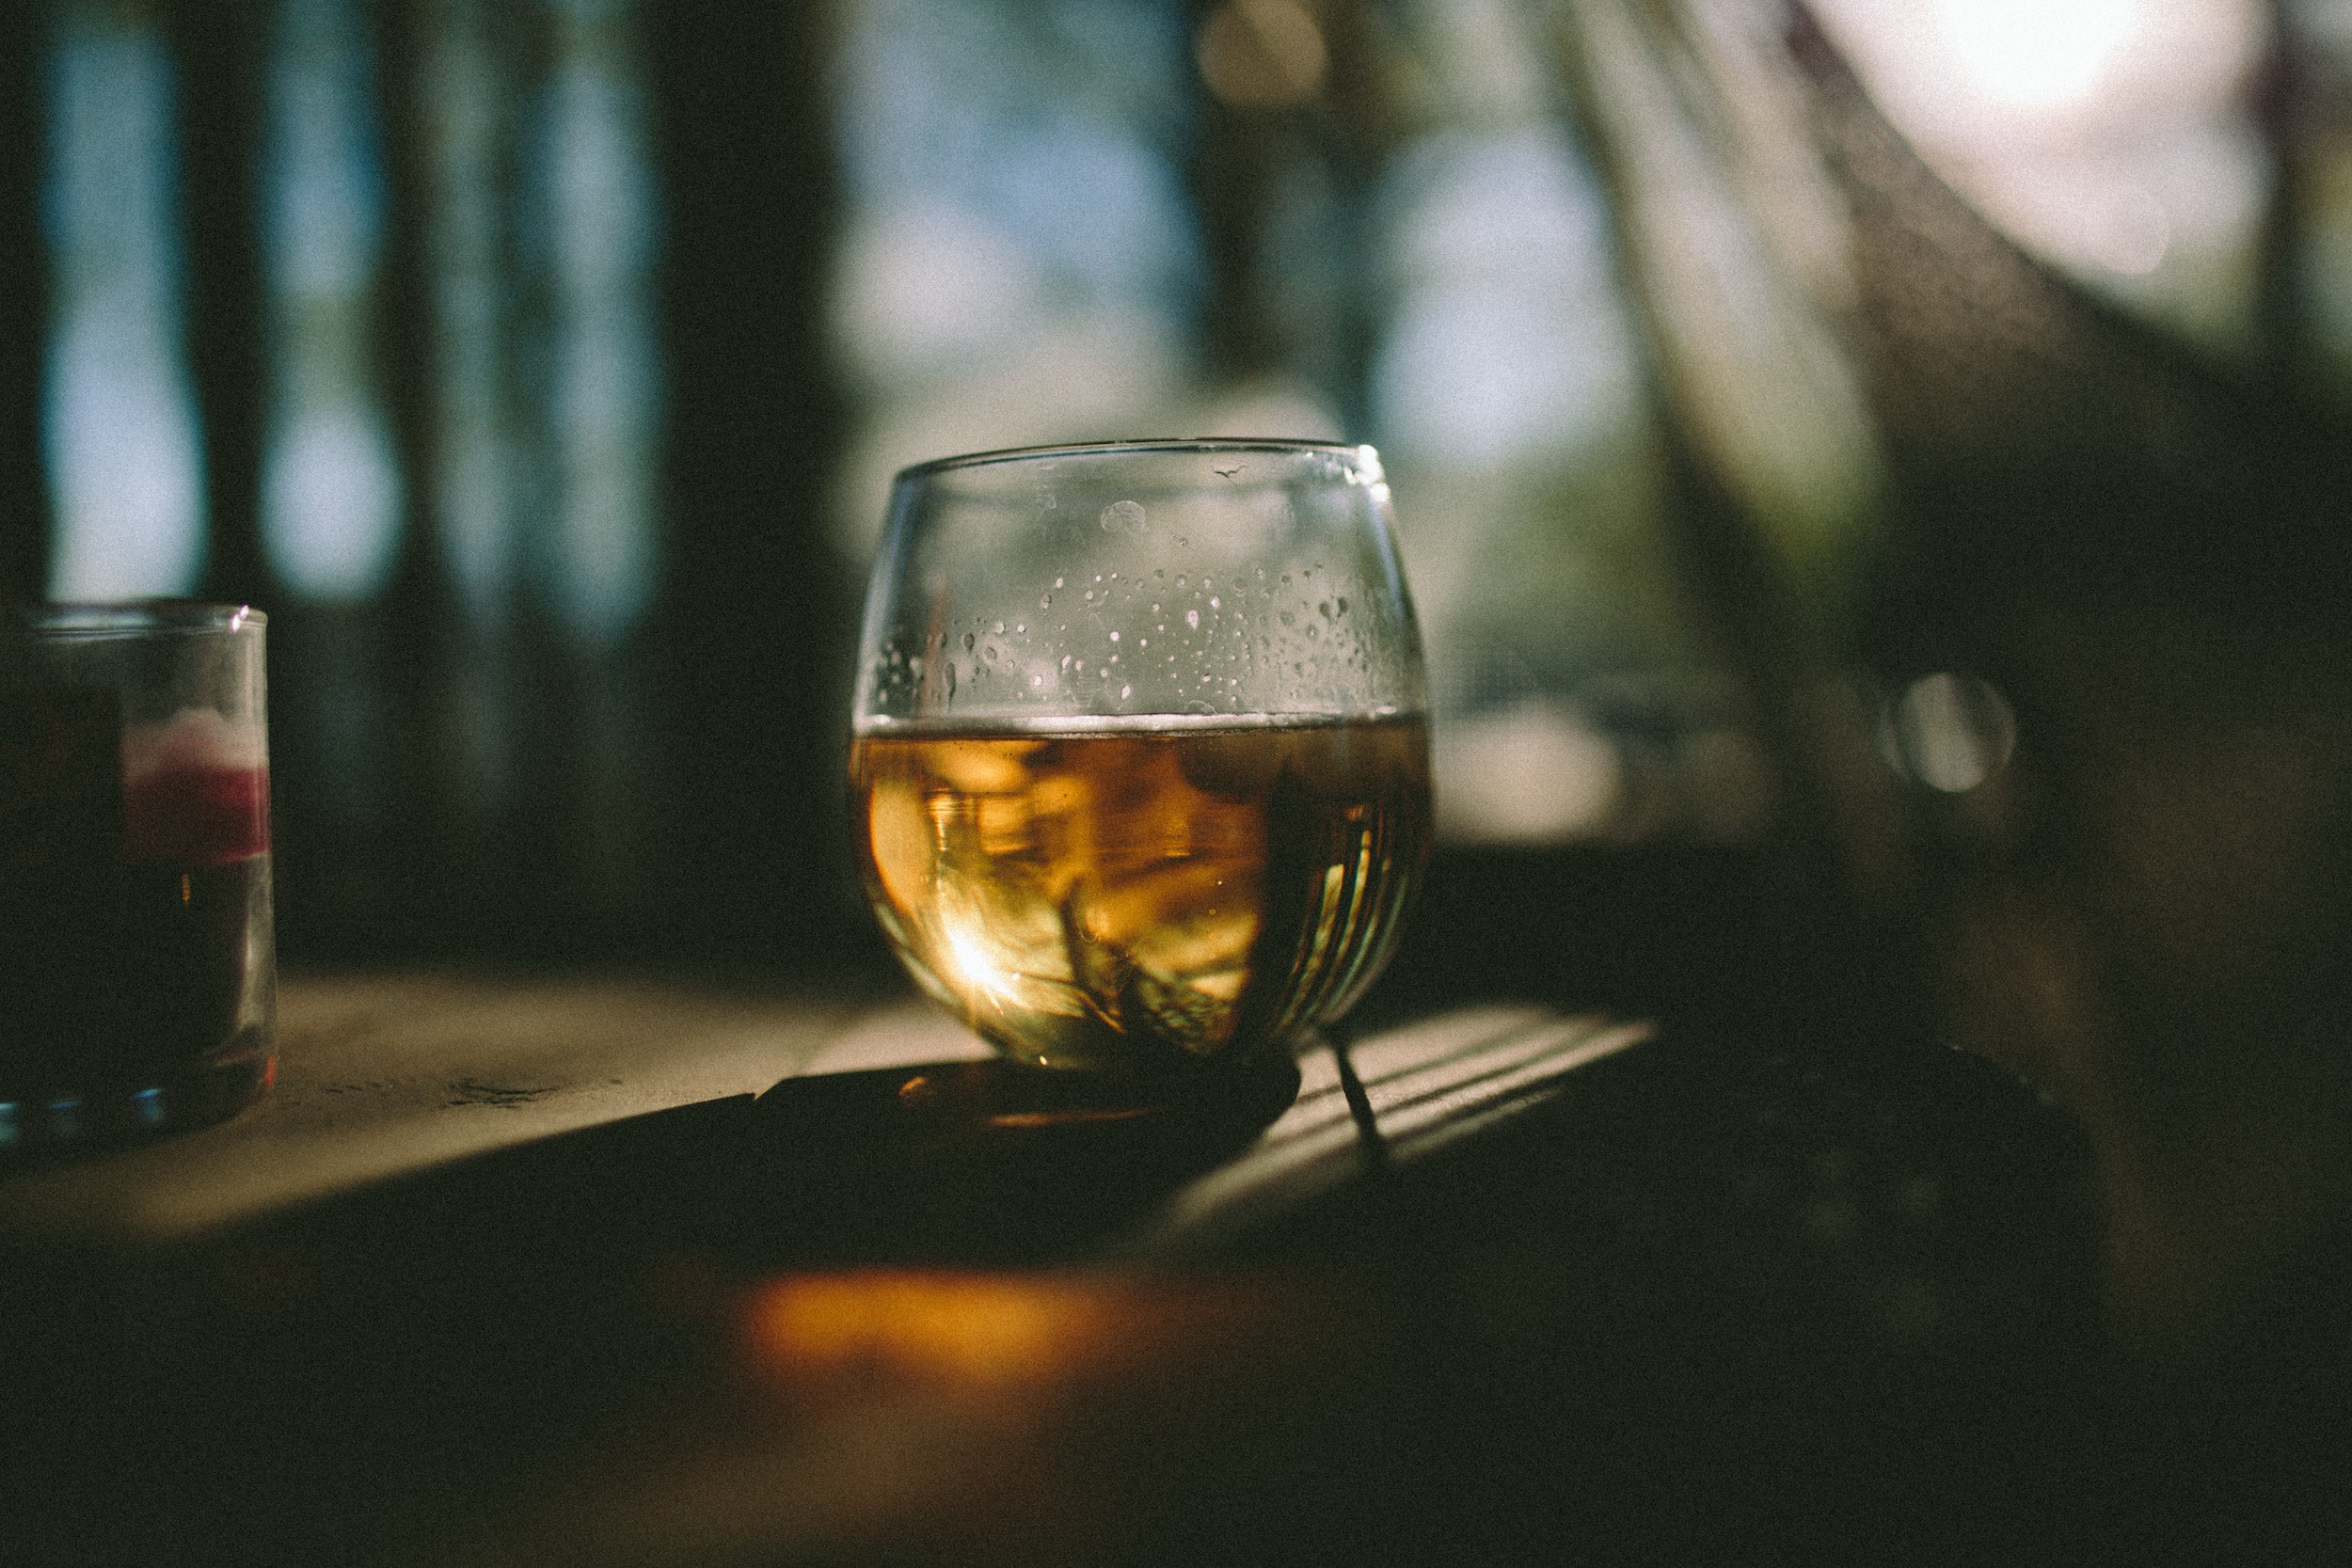 Alcohol can spike blood sugar in those with diabetes.